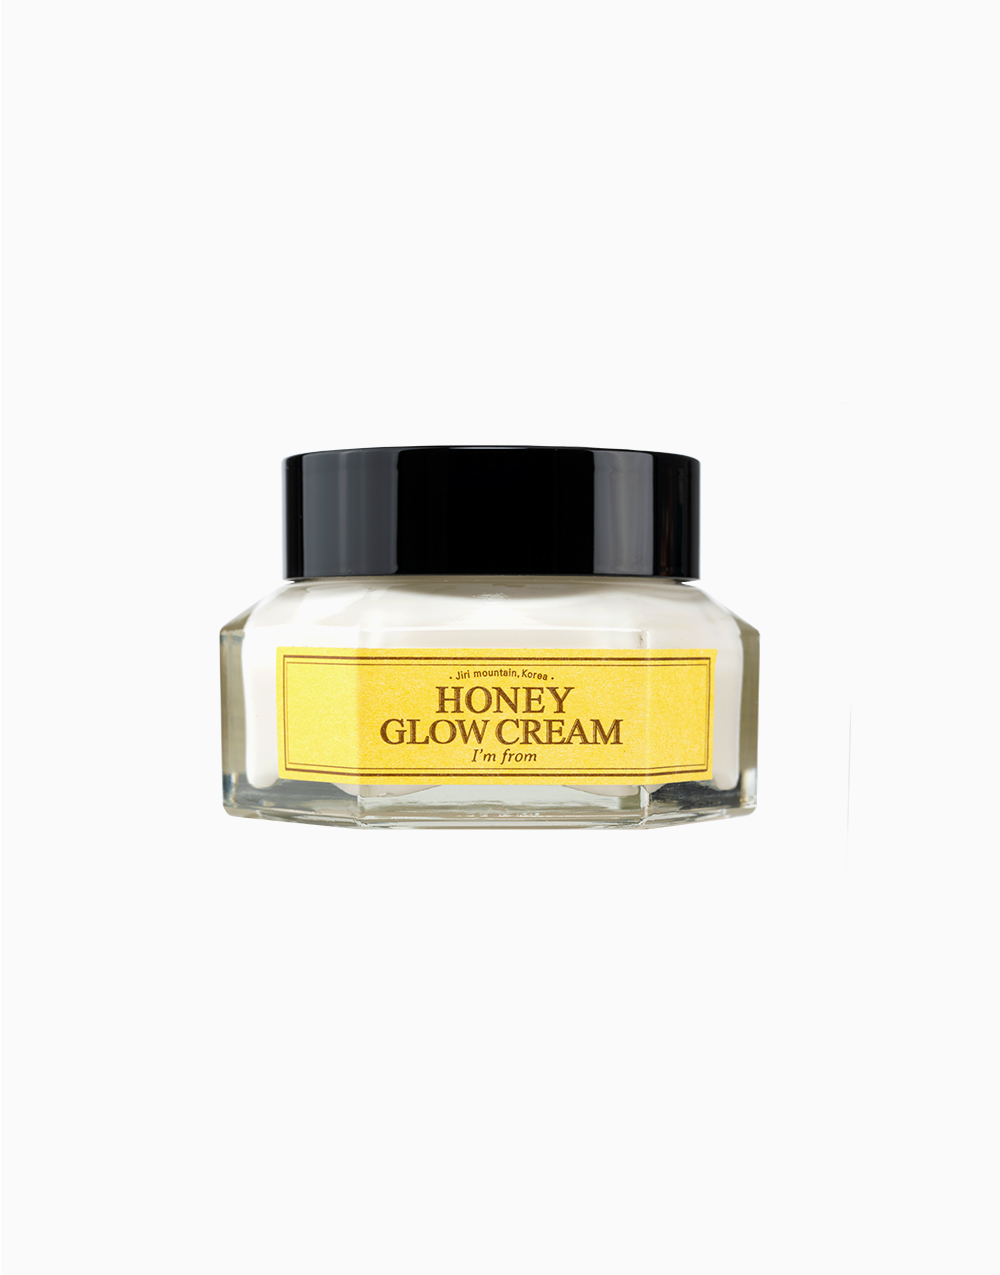 Honey Glow Cream by I'm From